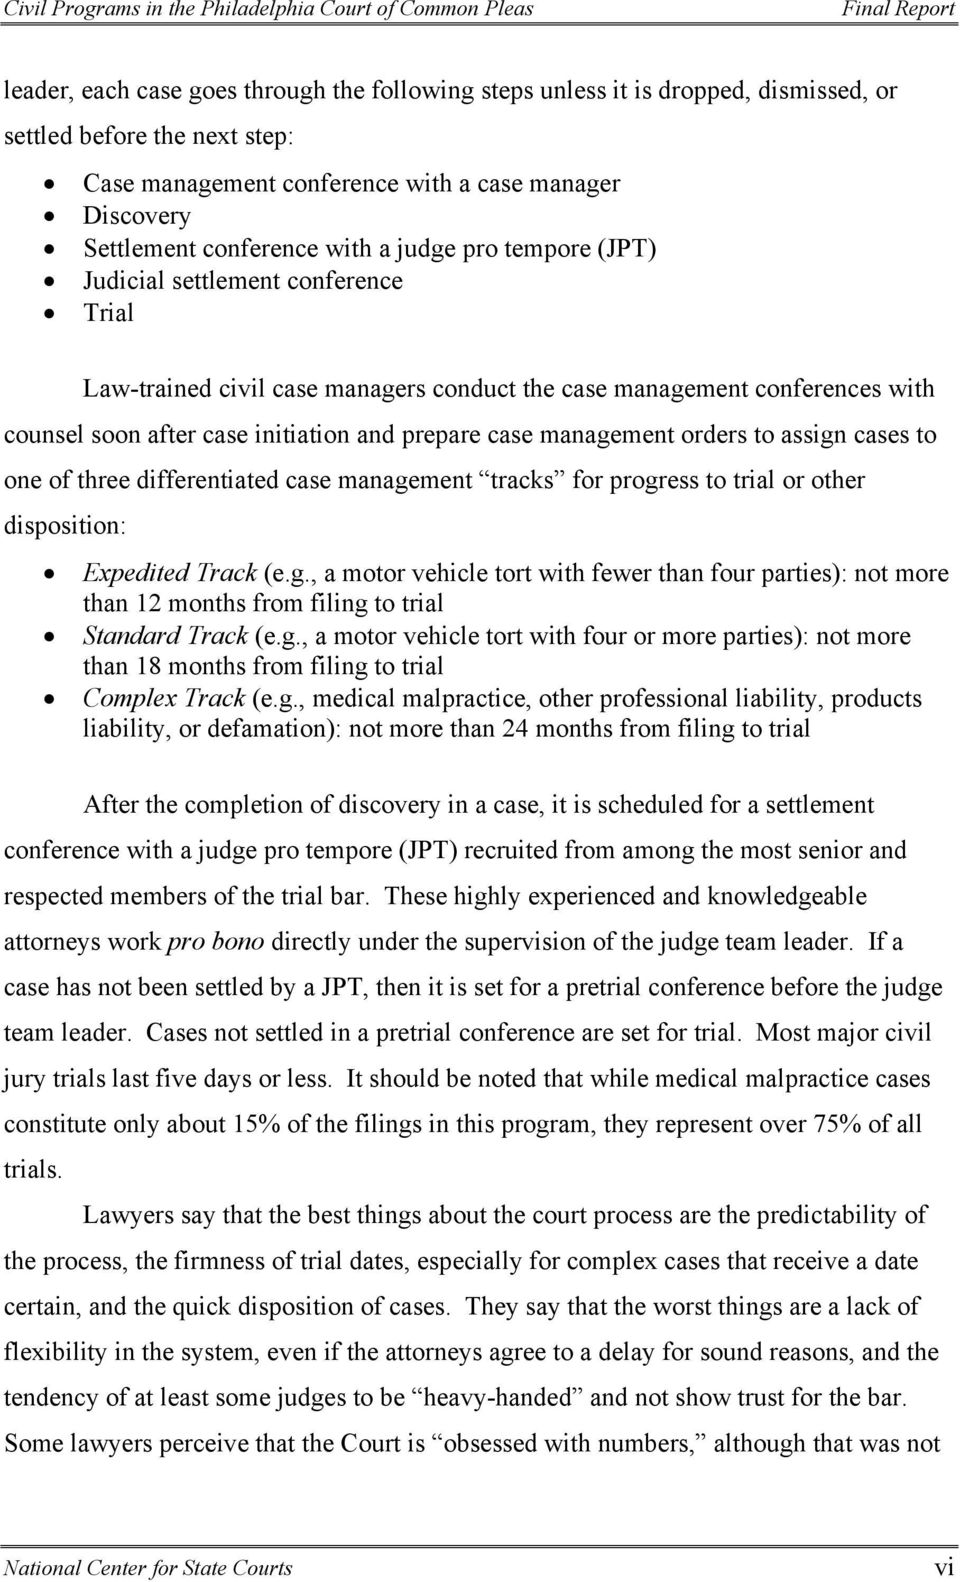 management orders to assign cases to one of three differentiated case management tracks for progress to trial or other disposition: Expedited Track (e.g., a motor vehicle tort with fewer than four parties): not more than 12 months from filing to trial Standard Track (e.